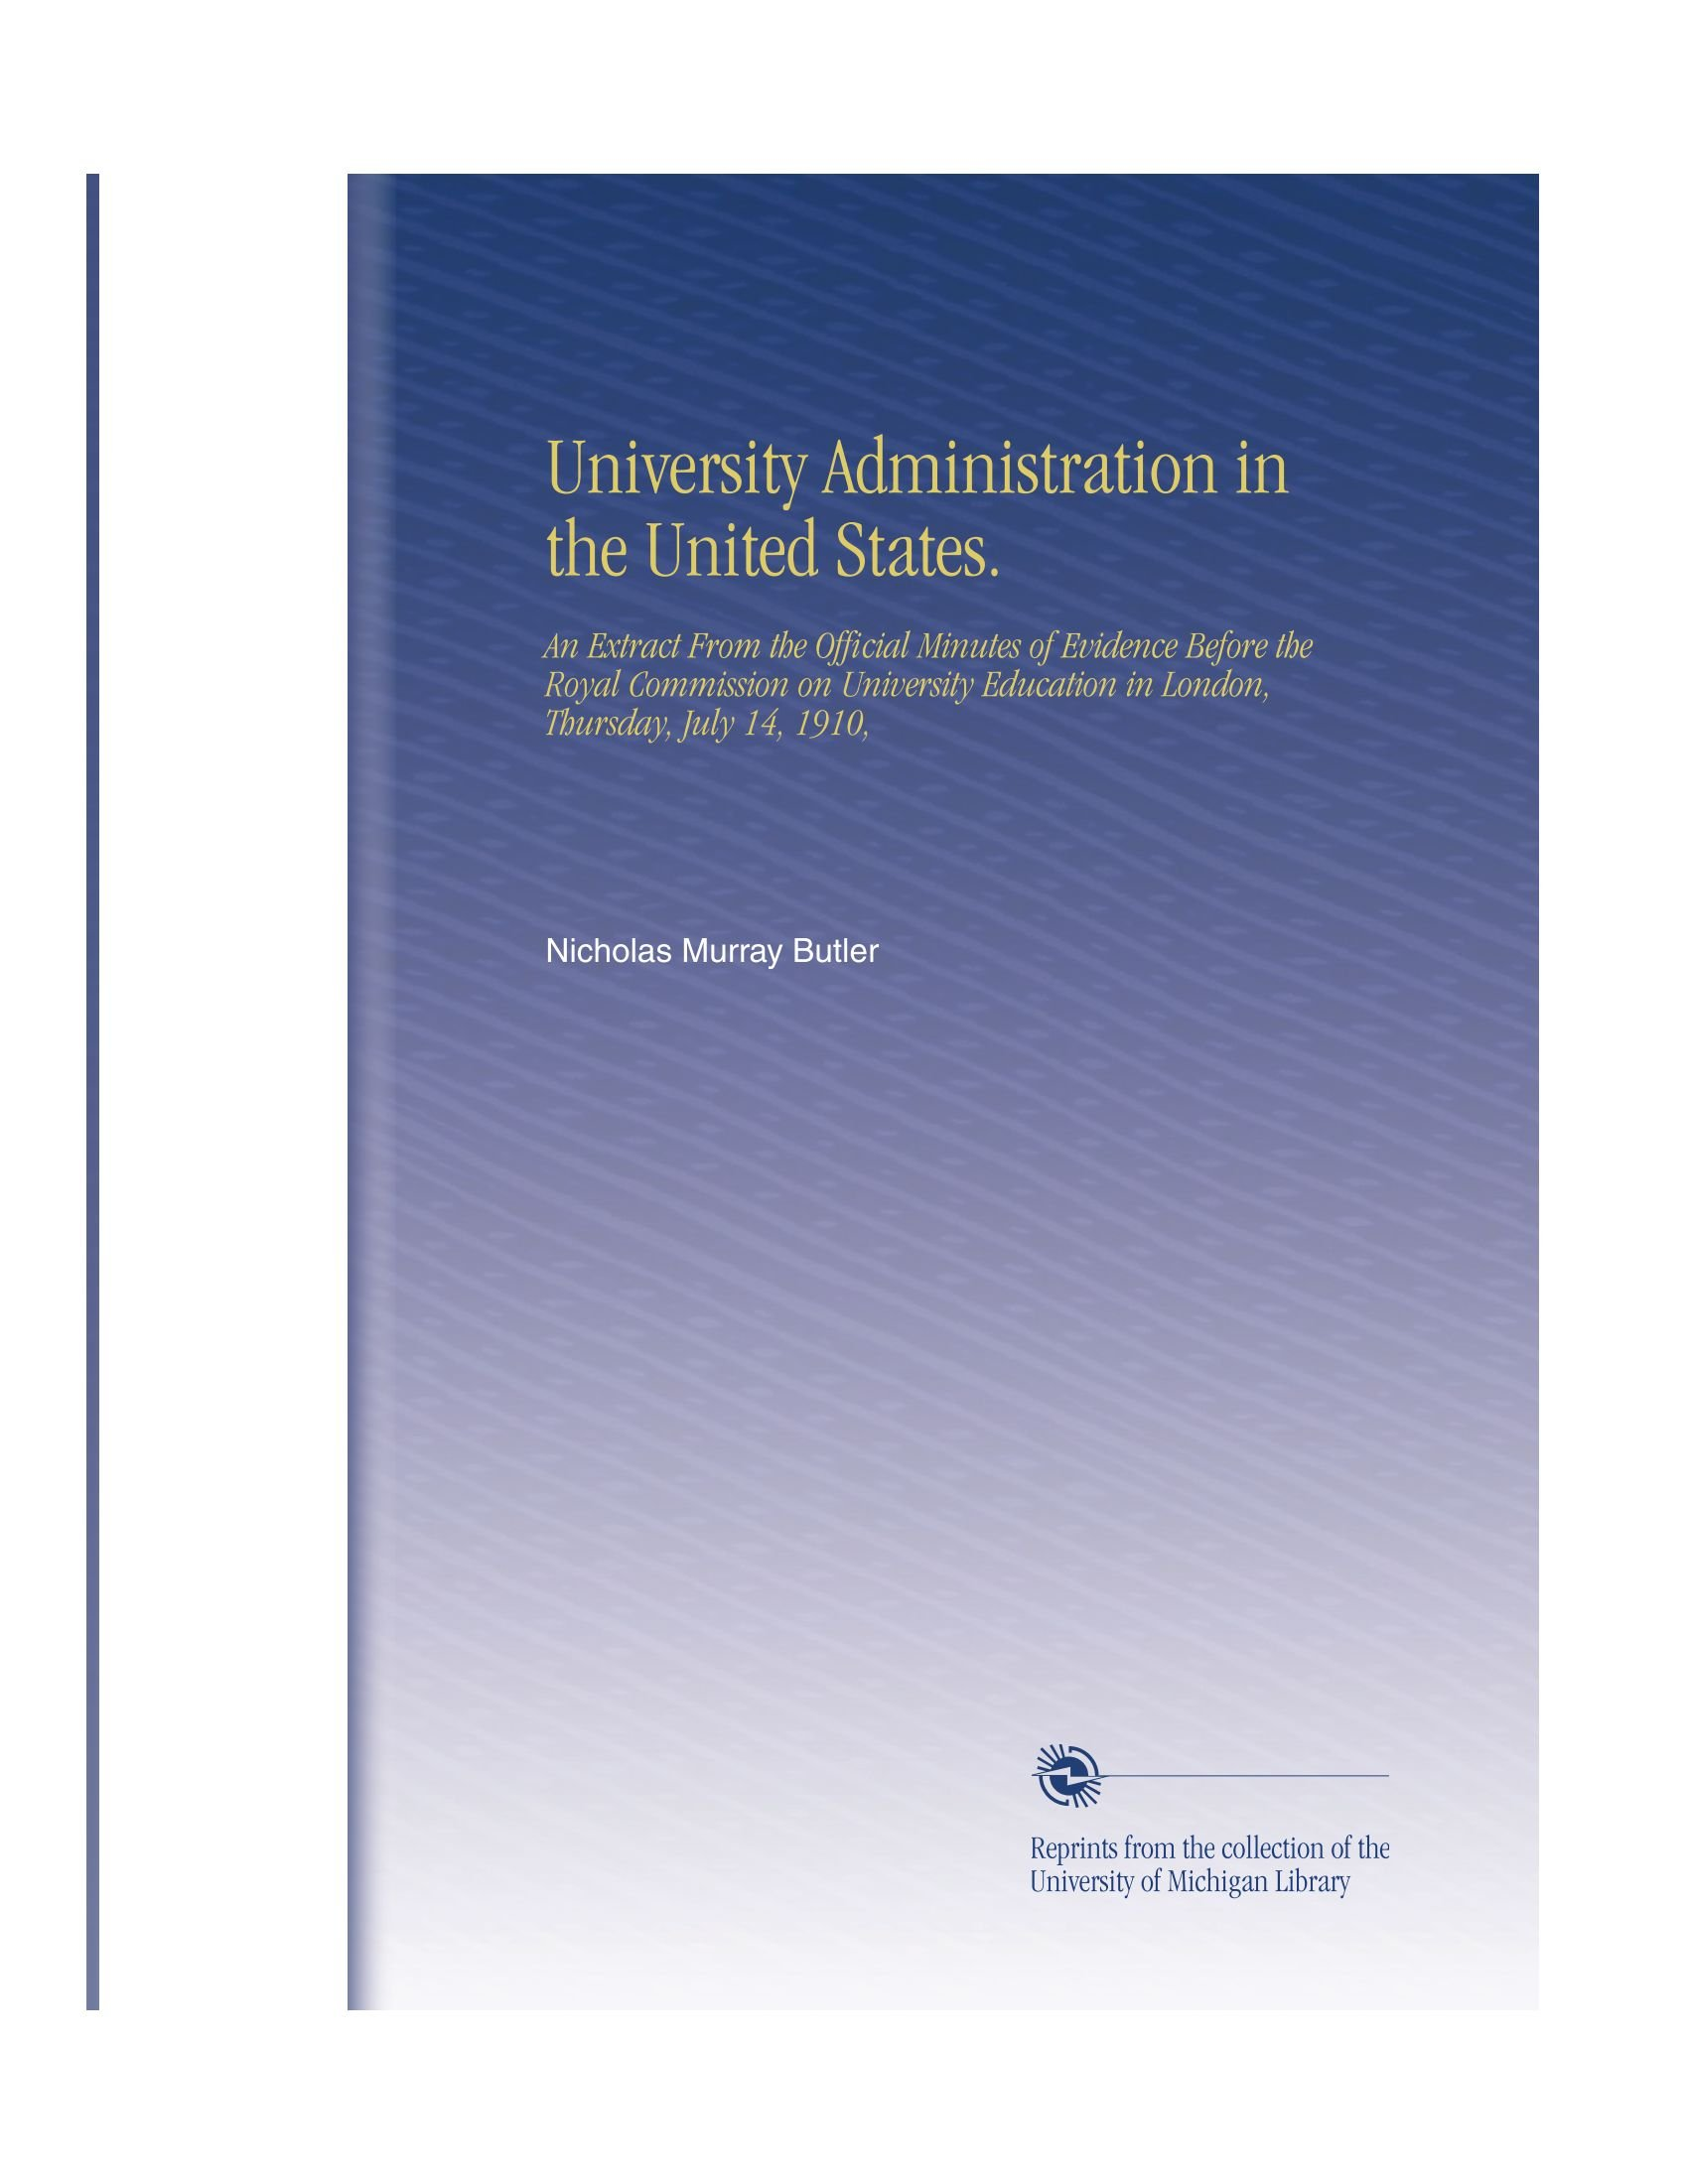 Download University Administration in the United States.: An Extract From the Official Minutes of Evidence Before the Royal Commission on University Education in London, Thursday, July 14, 1910, PDF